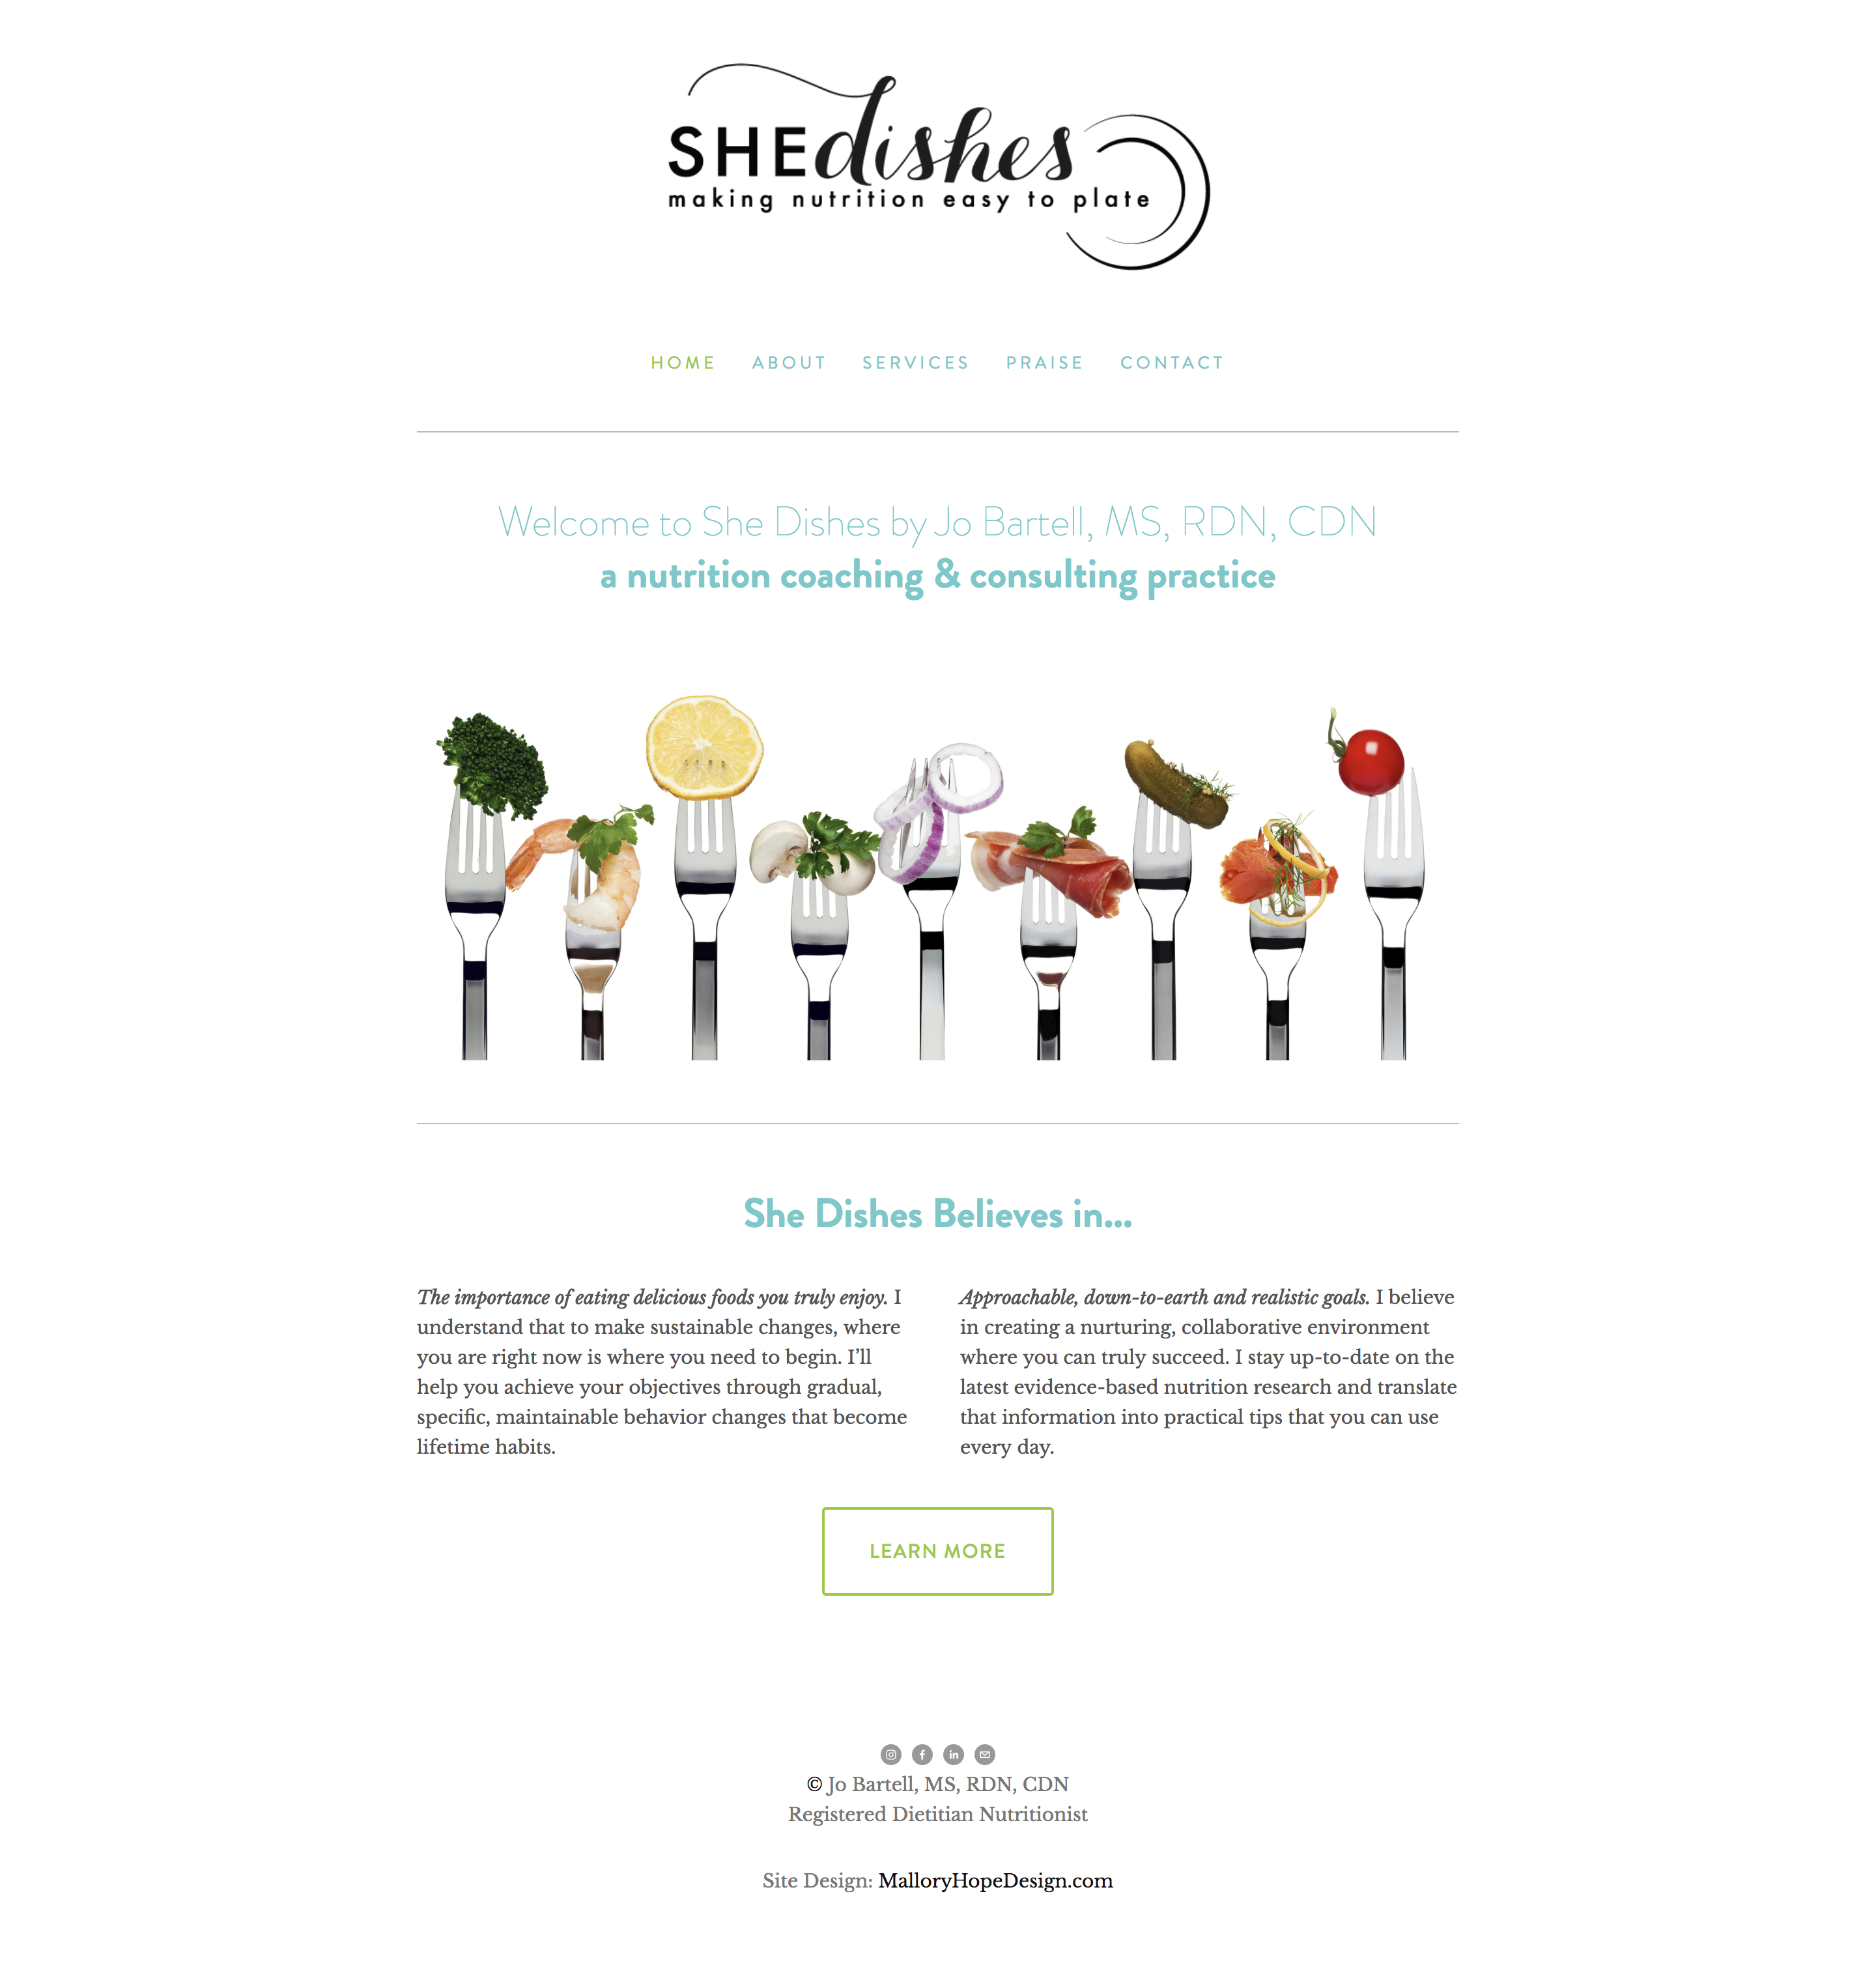 screencapture-shedishes-2018-06-11-12-38-22.png